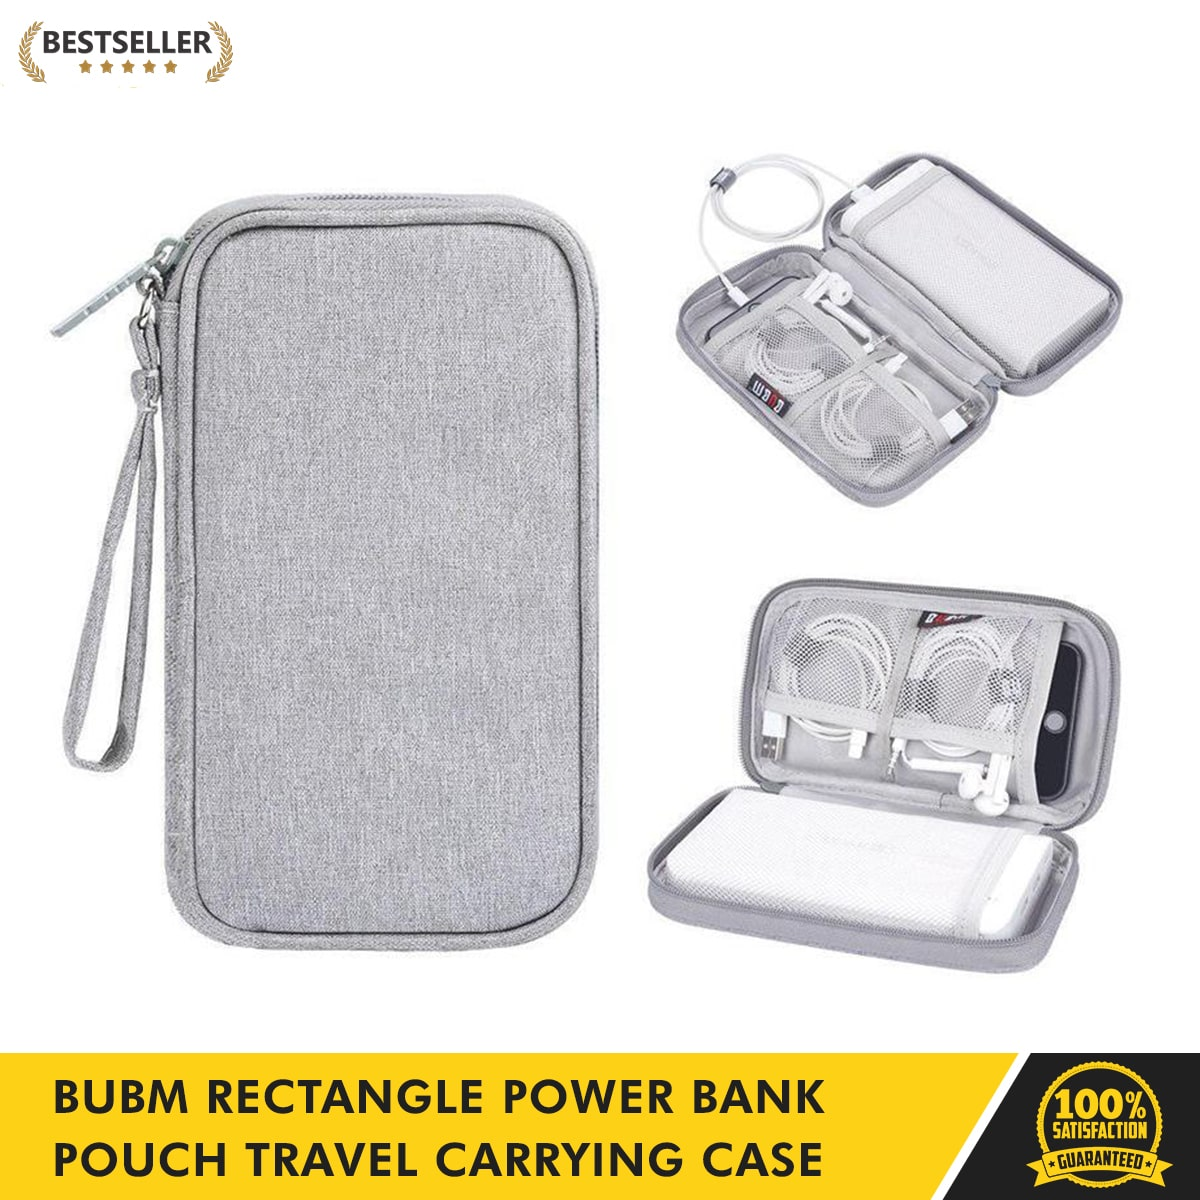 Portable Carrying Travel Case Bag For Charger External Battery Power Bank Cables